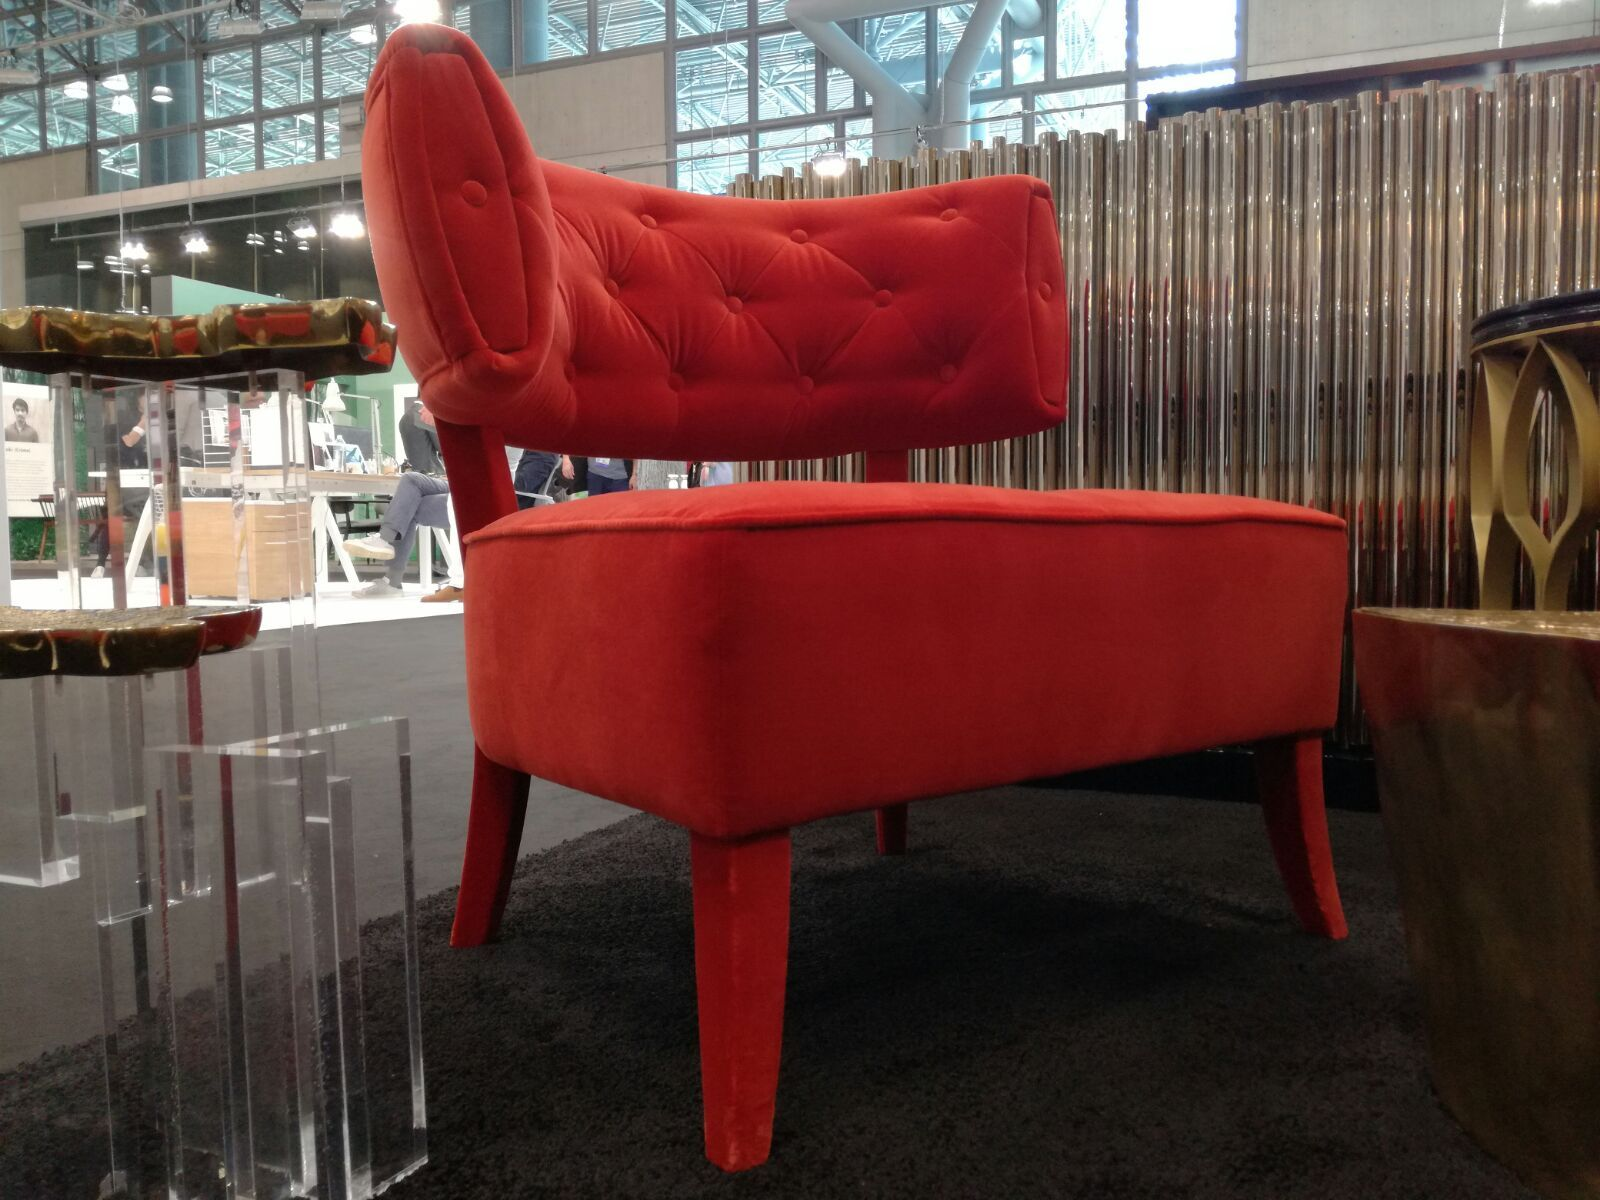 Contemporary Furniture Design By Top Interior Design Brands: Covet House At  The Covet Lounge,